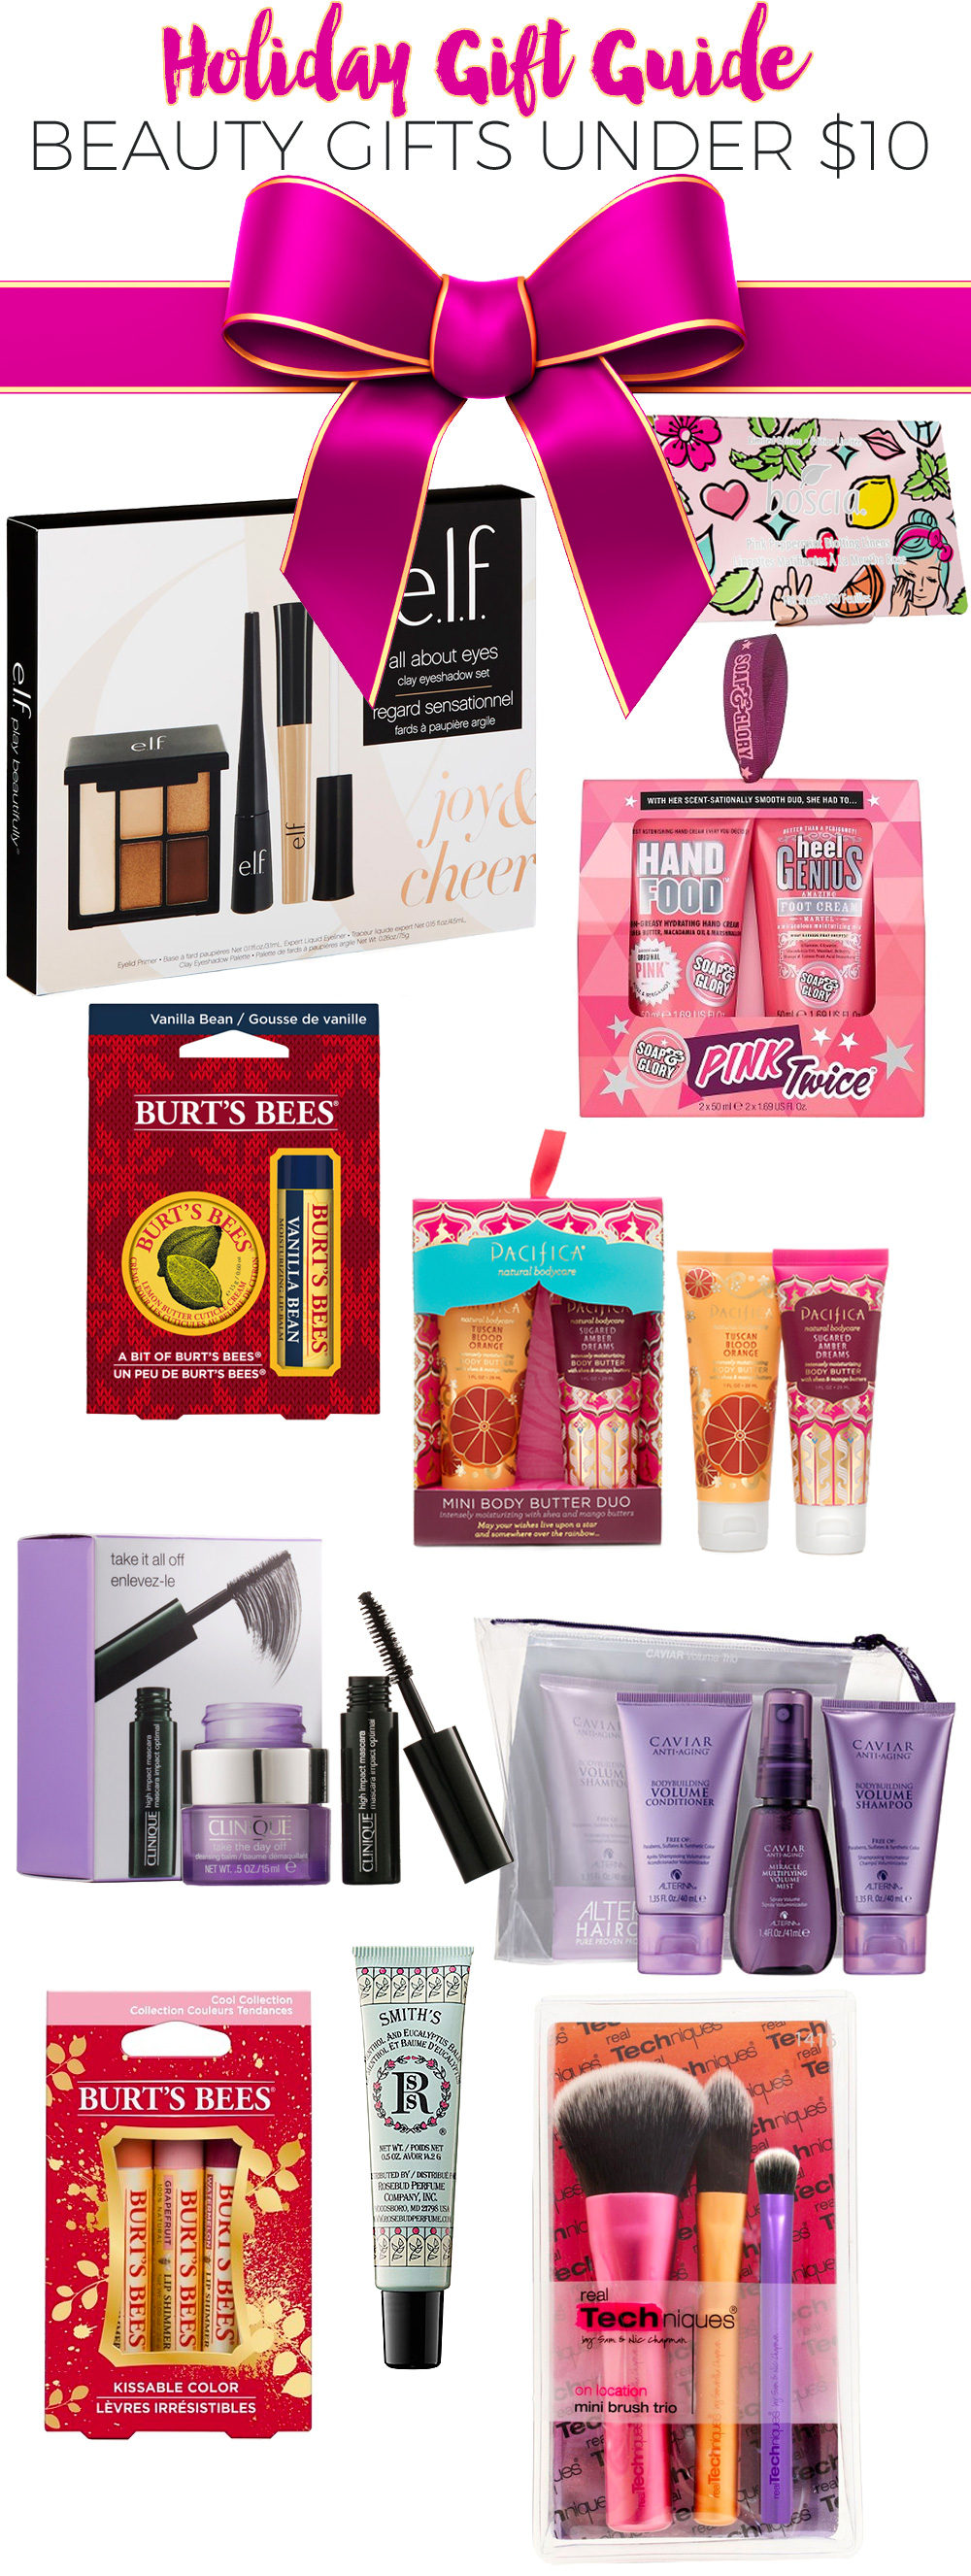 Top 10 Beauty Gifts Under $10